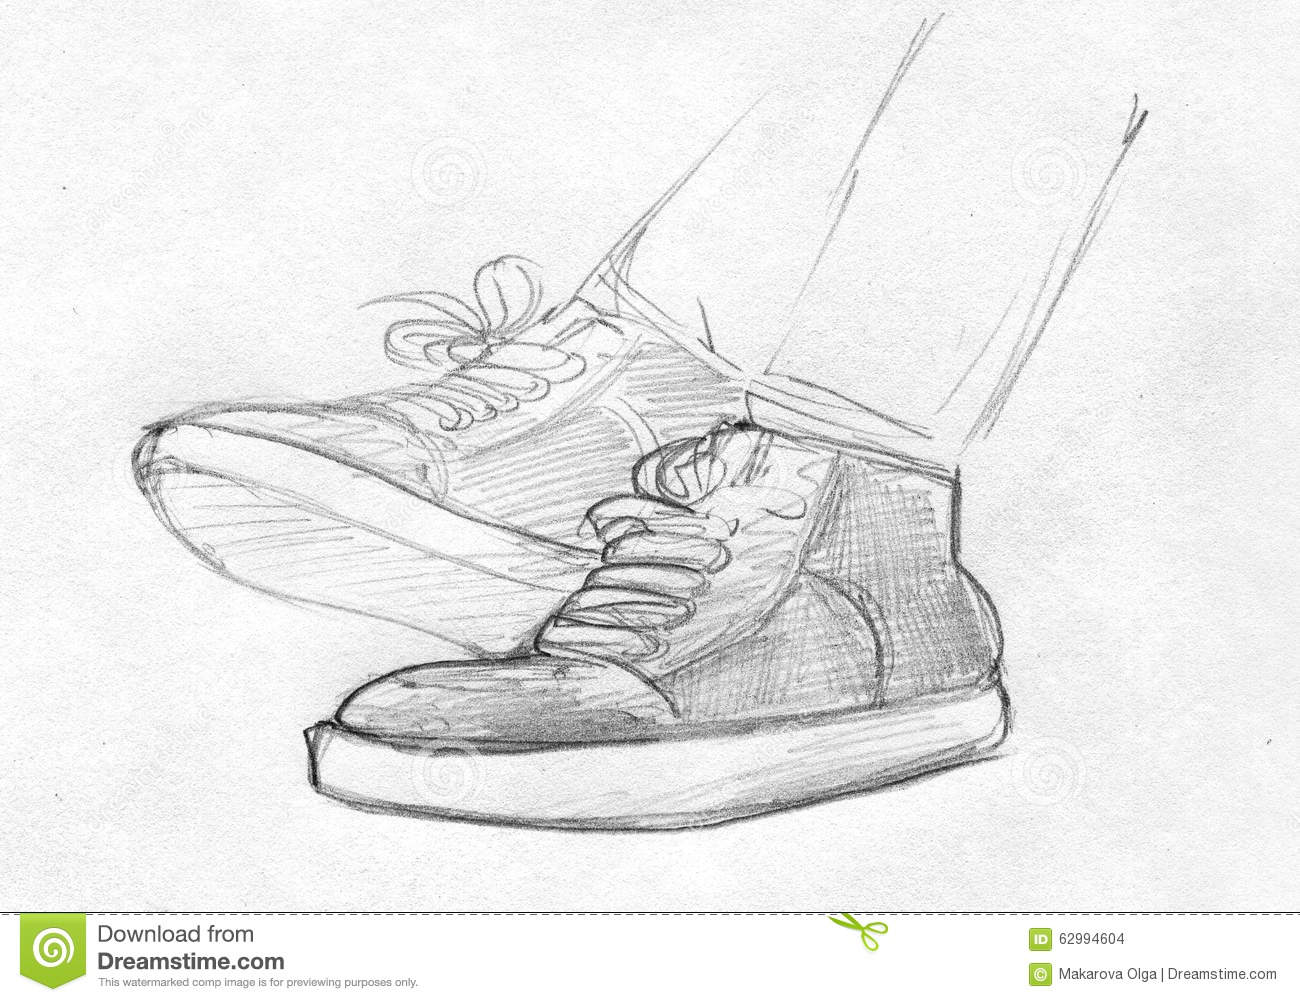 Pencil sketch of feet in gym shoes